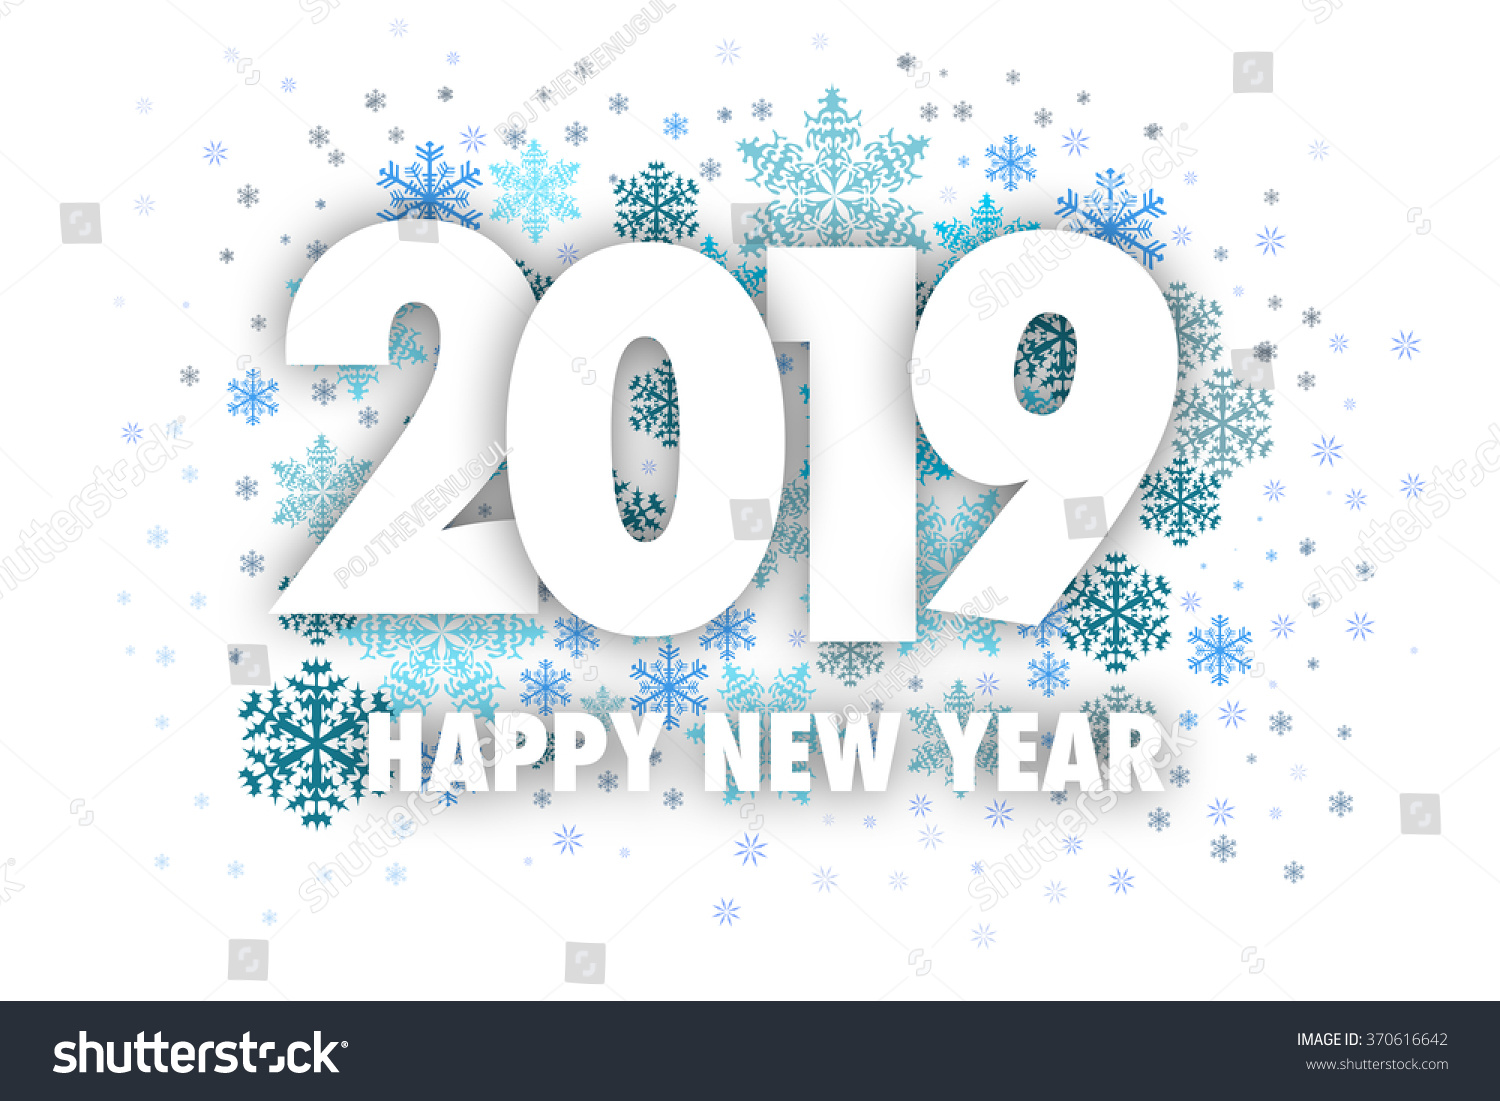 Happy 2019 >> Happy 2019 New Year On Snowflake Stock Illustration 370616642